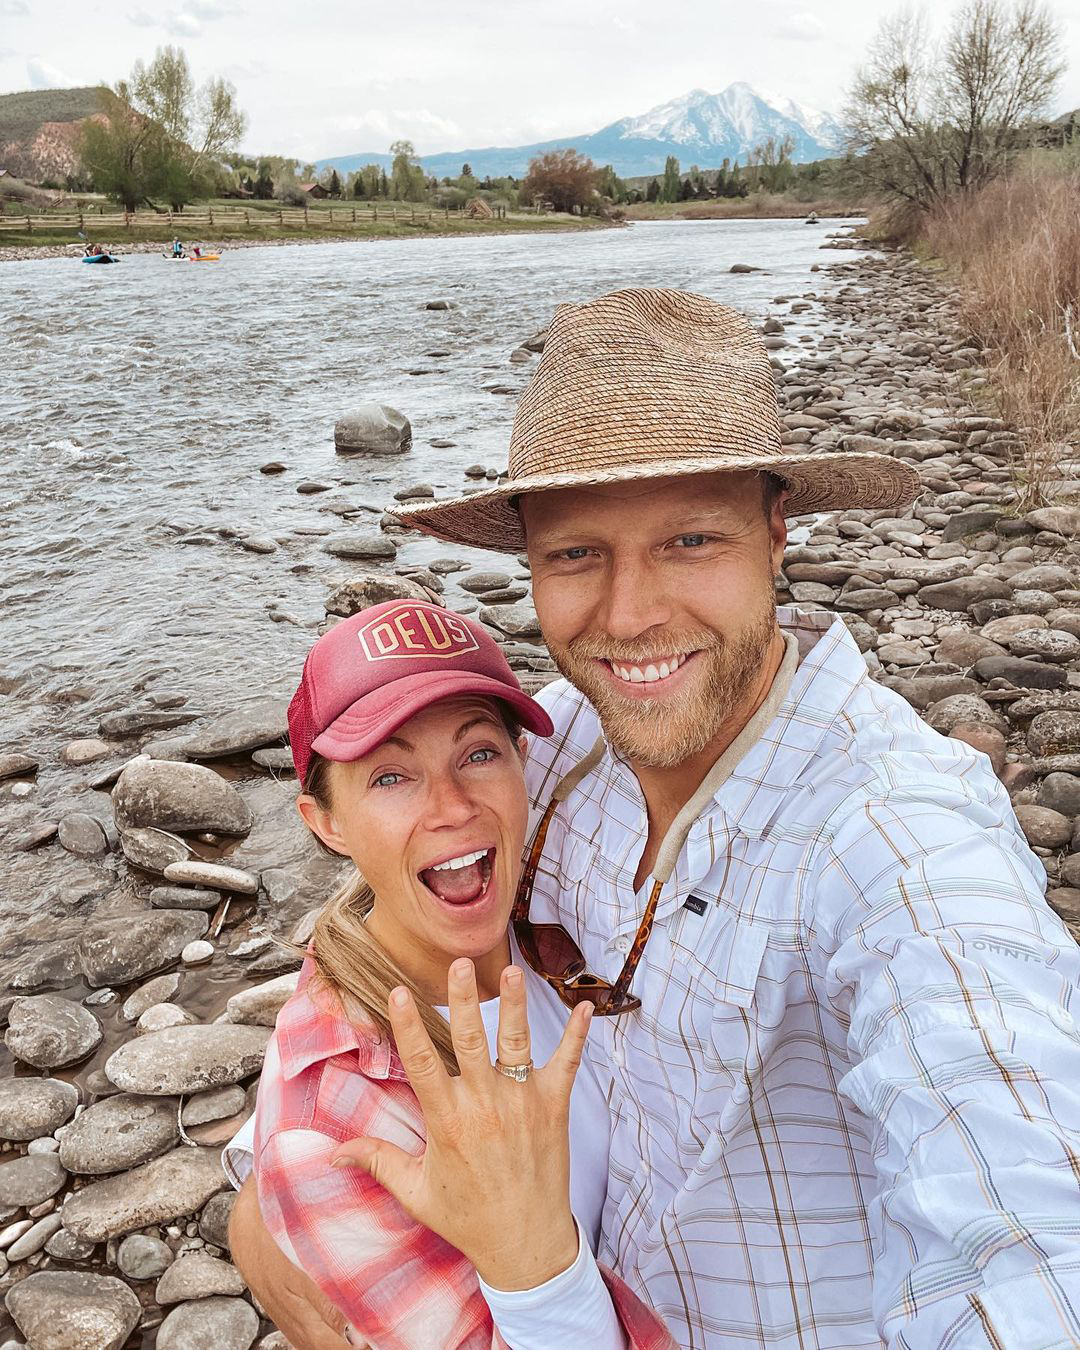 The Bachelor's Sarah Herron Is Engaged to Dylan Brown After 4 Years Together